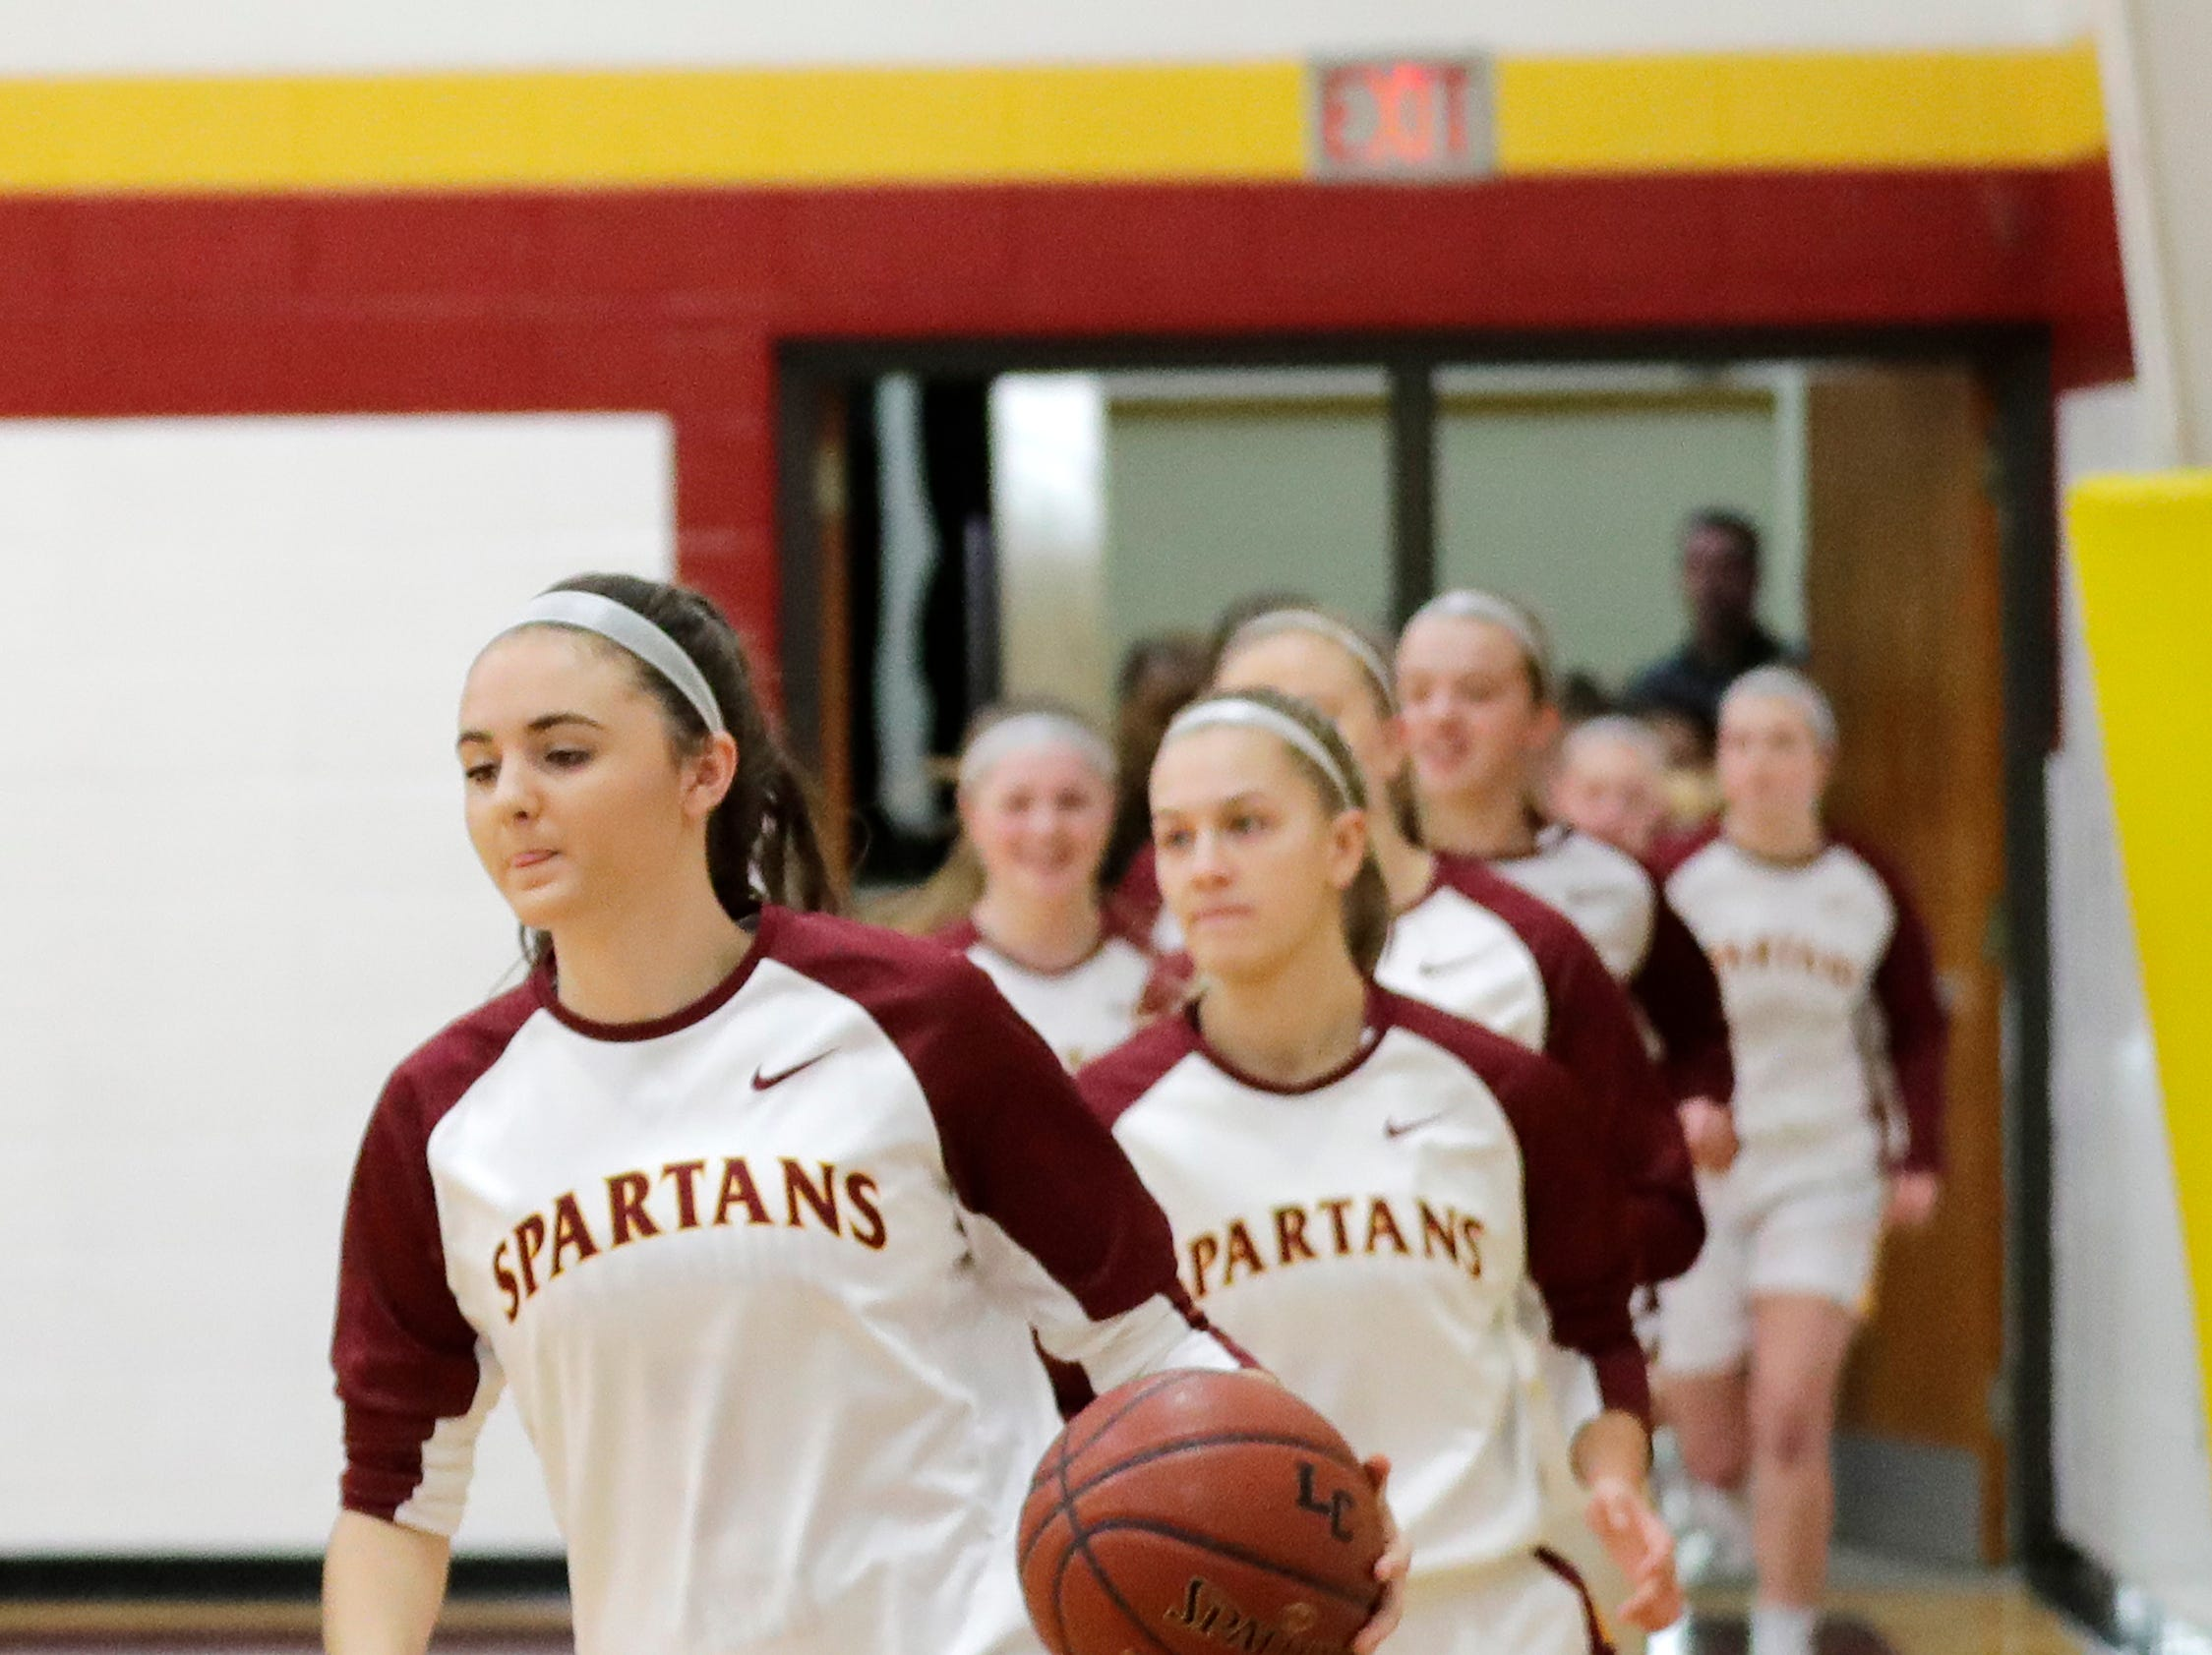 Luxemburg-Casco's Cassie Schiltz (3) leads the Spartans out to face Waupaca in a girls basketball game at Luxemburg-Casco high school on Thursday, January 10, 2019 in Luxemburg, Wis.